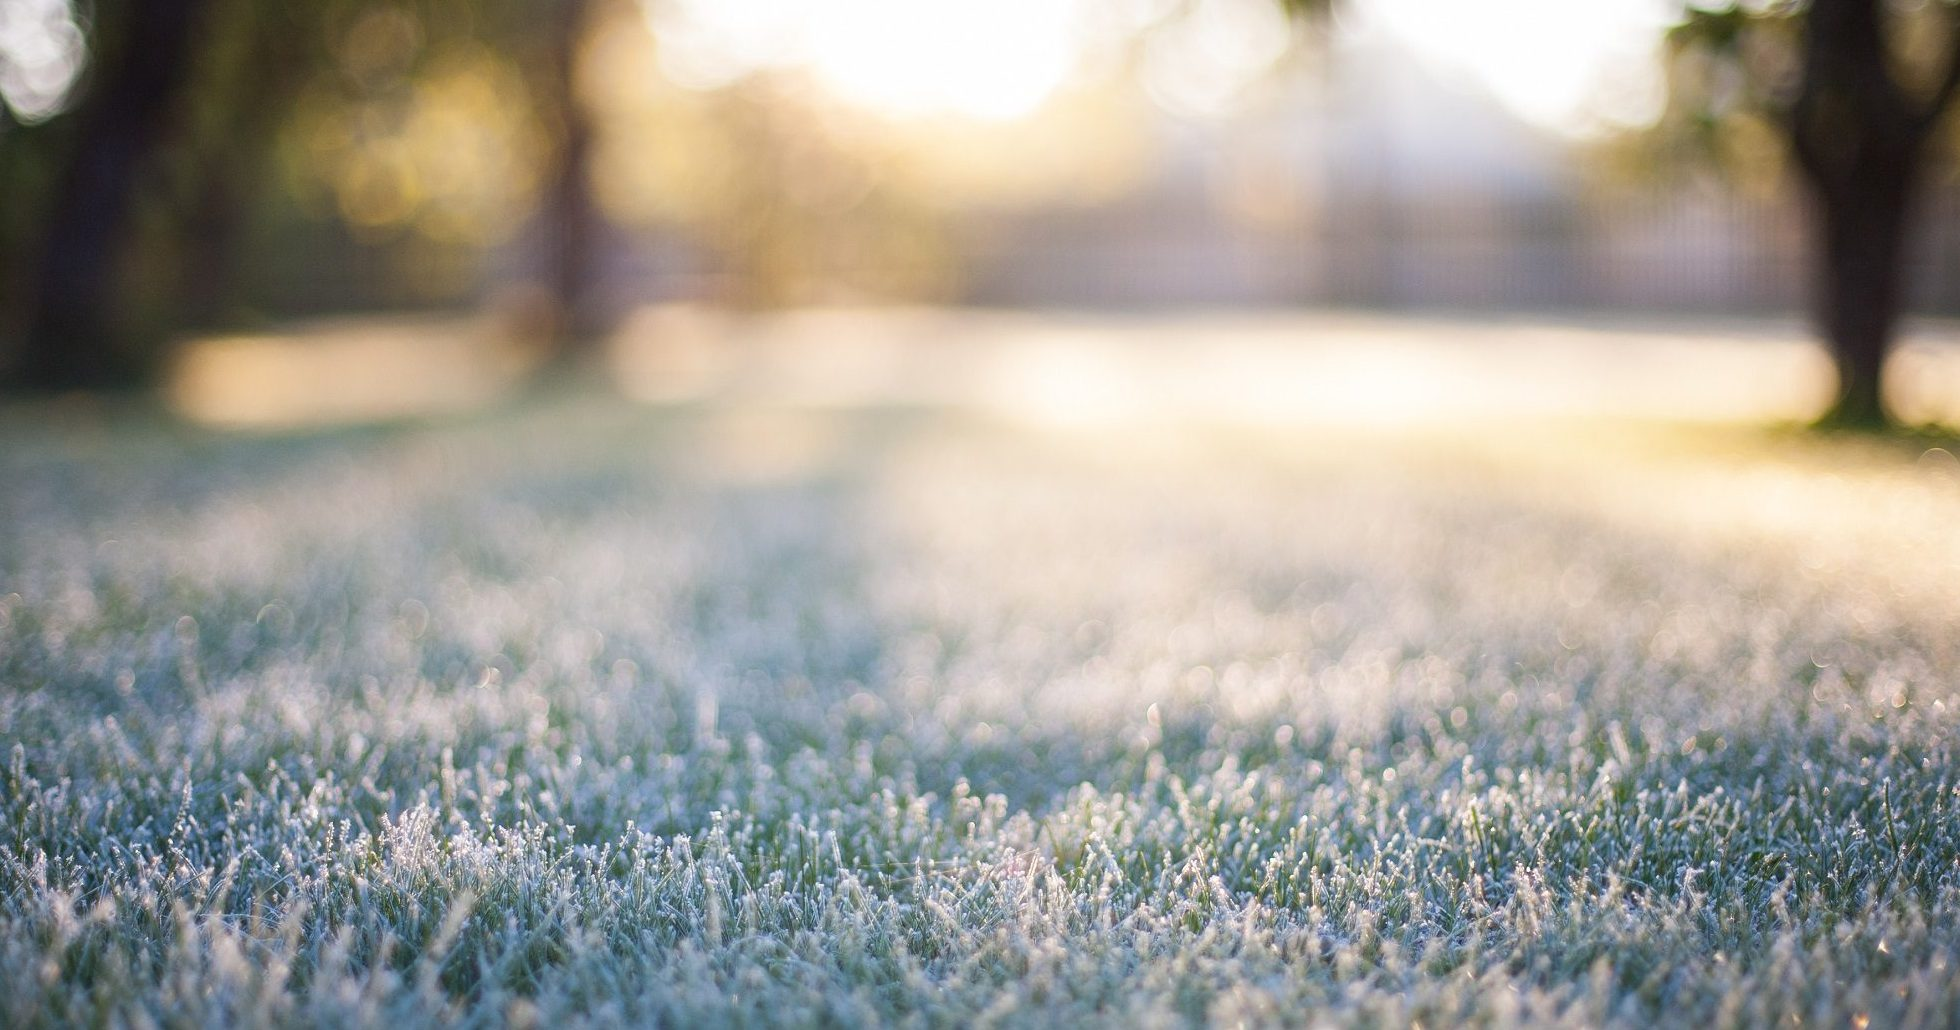 winterize your sprinkler to prevent frozen lawns and broken pipes